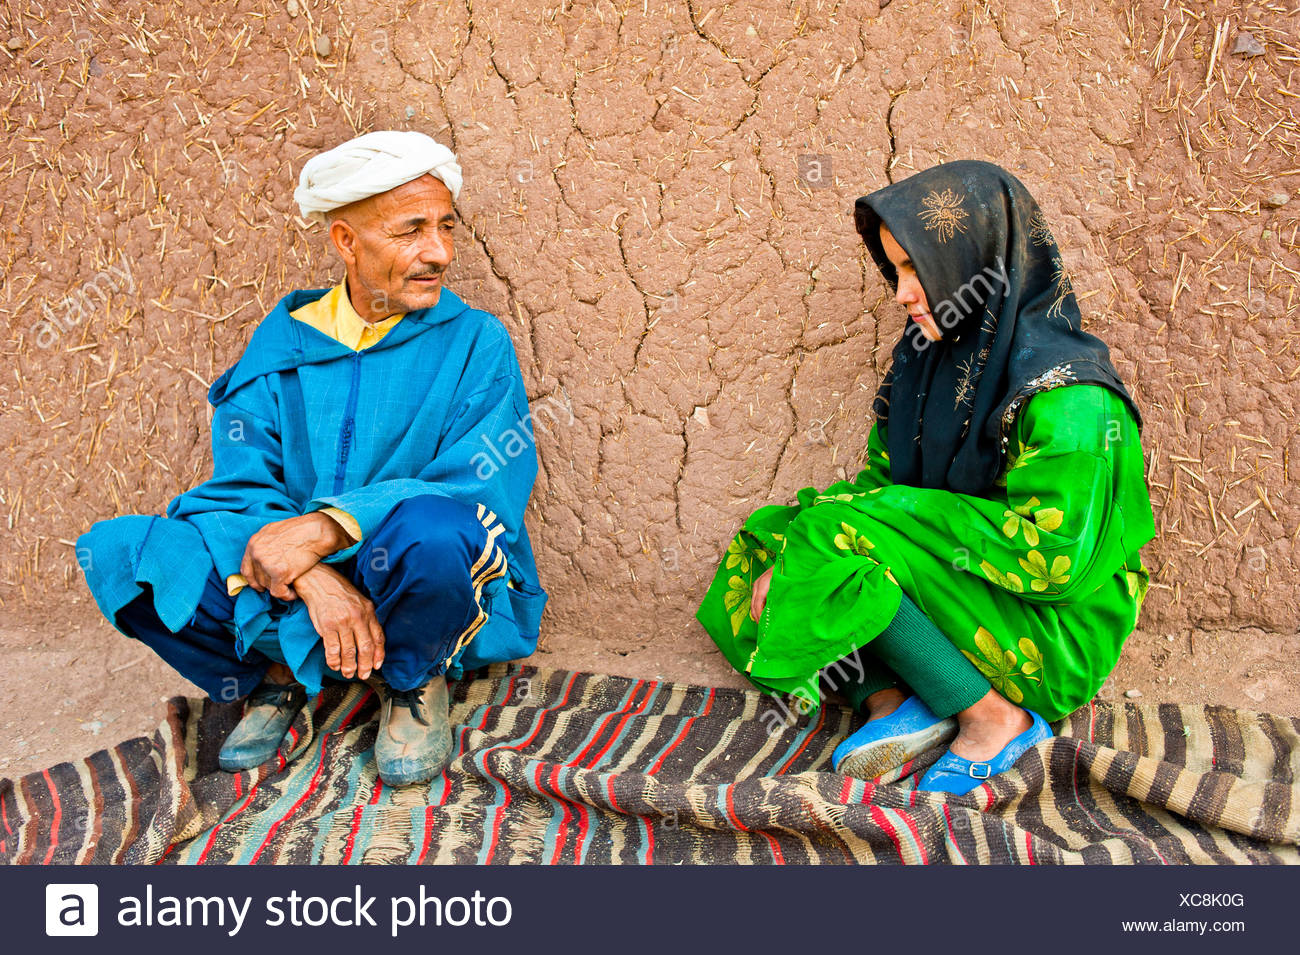 Elderly man and a young girl, Berber people, squatting on a carpet or rug in front of a mud brick house talking - Stock Image